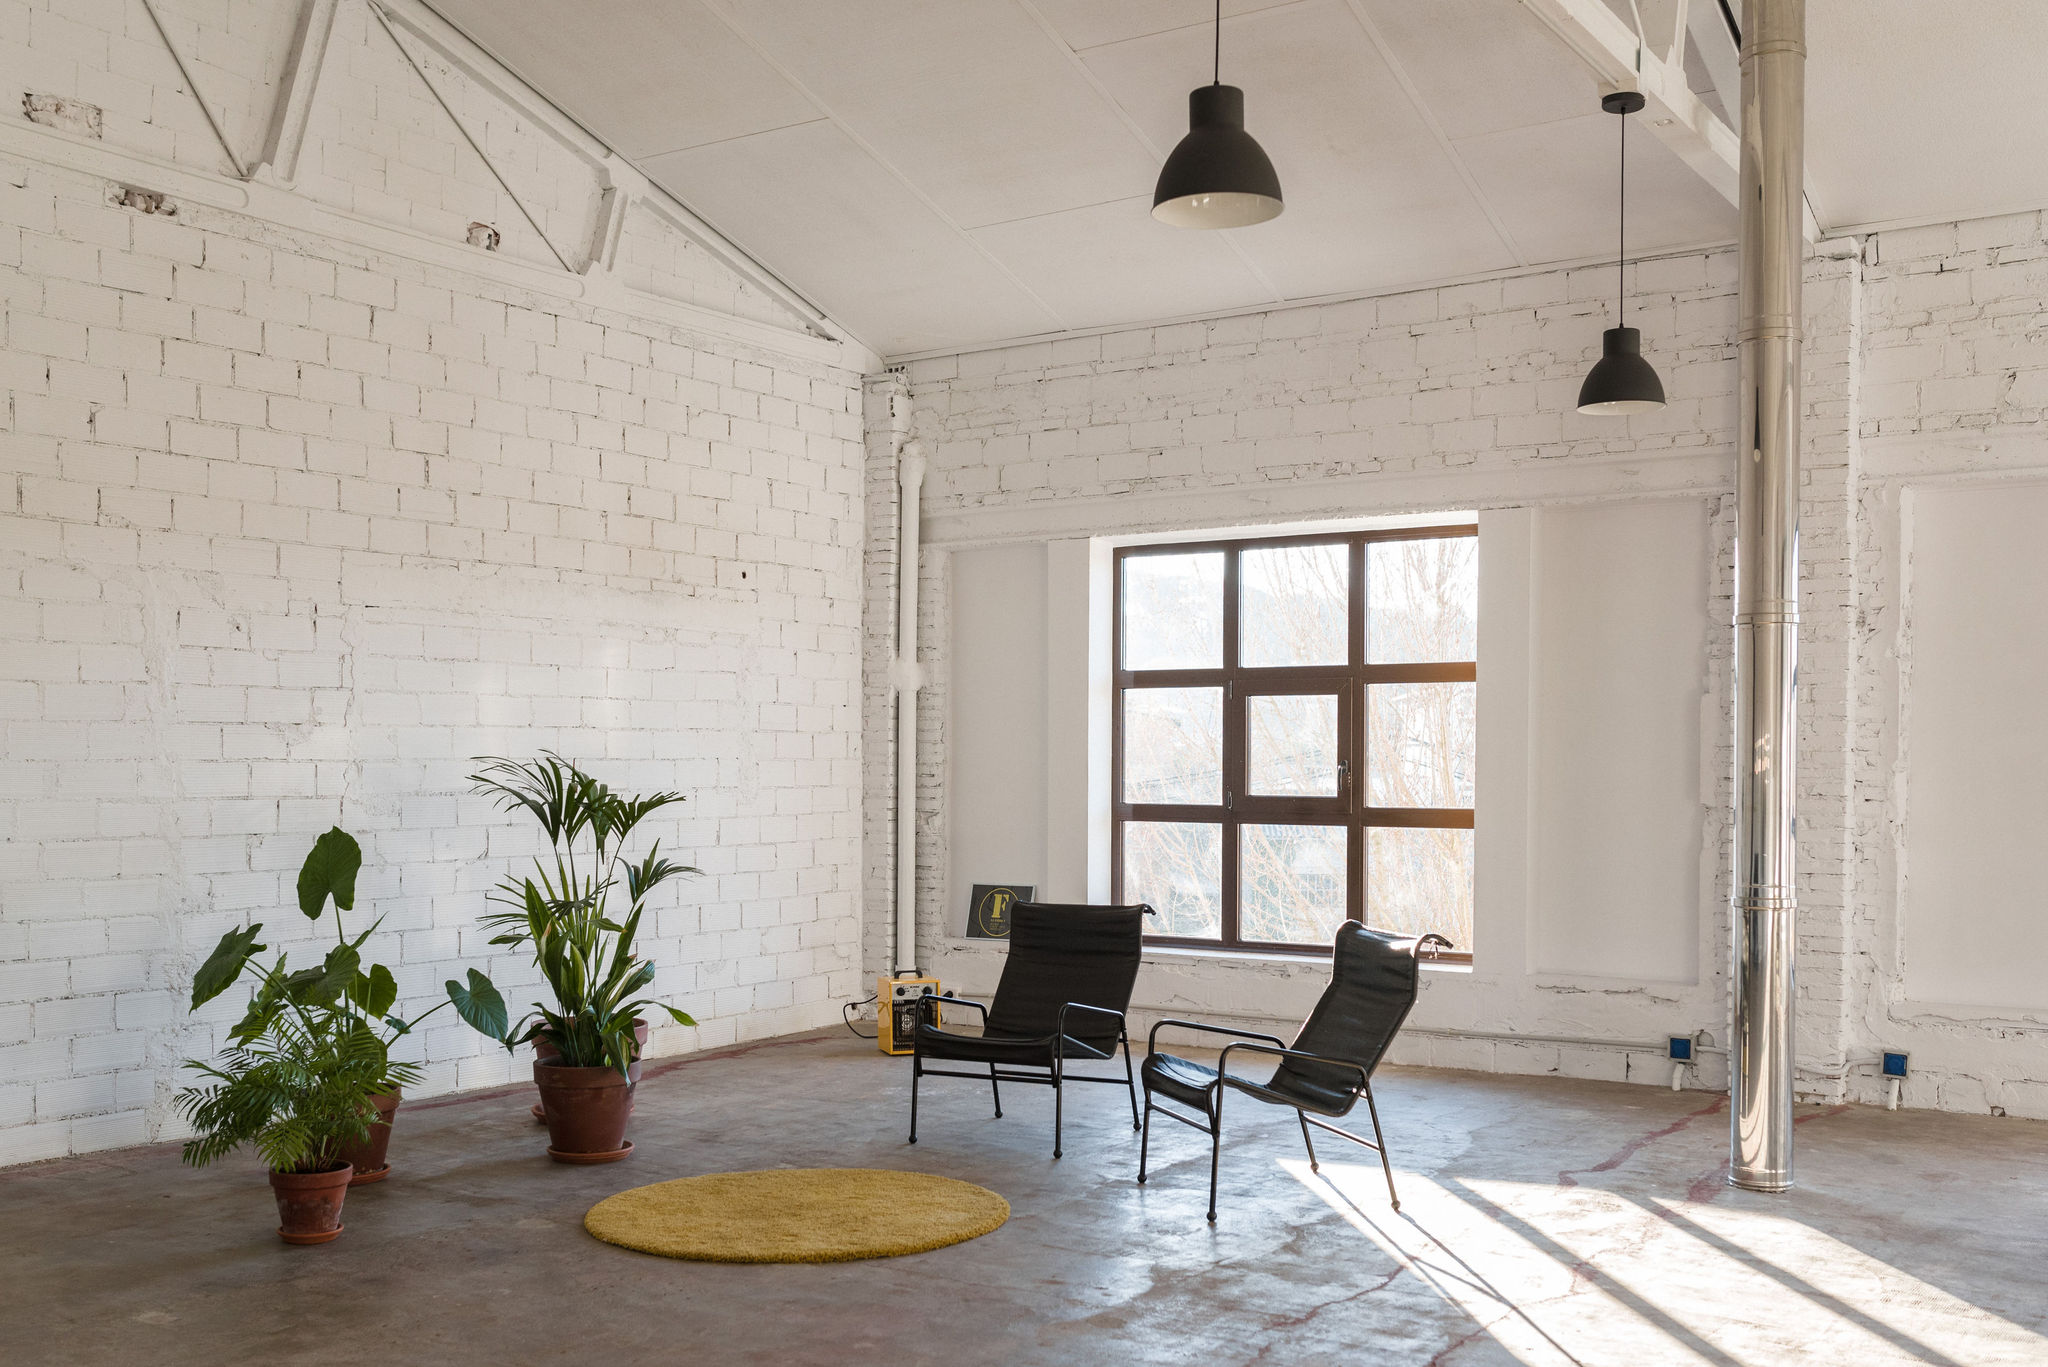 natural light, photography spaces, inspiration, industrial style